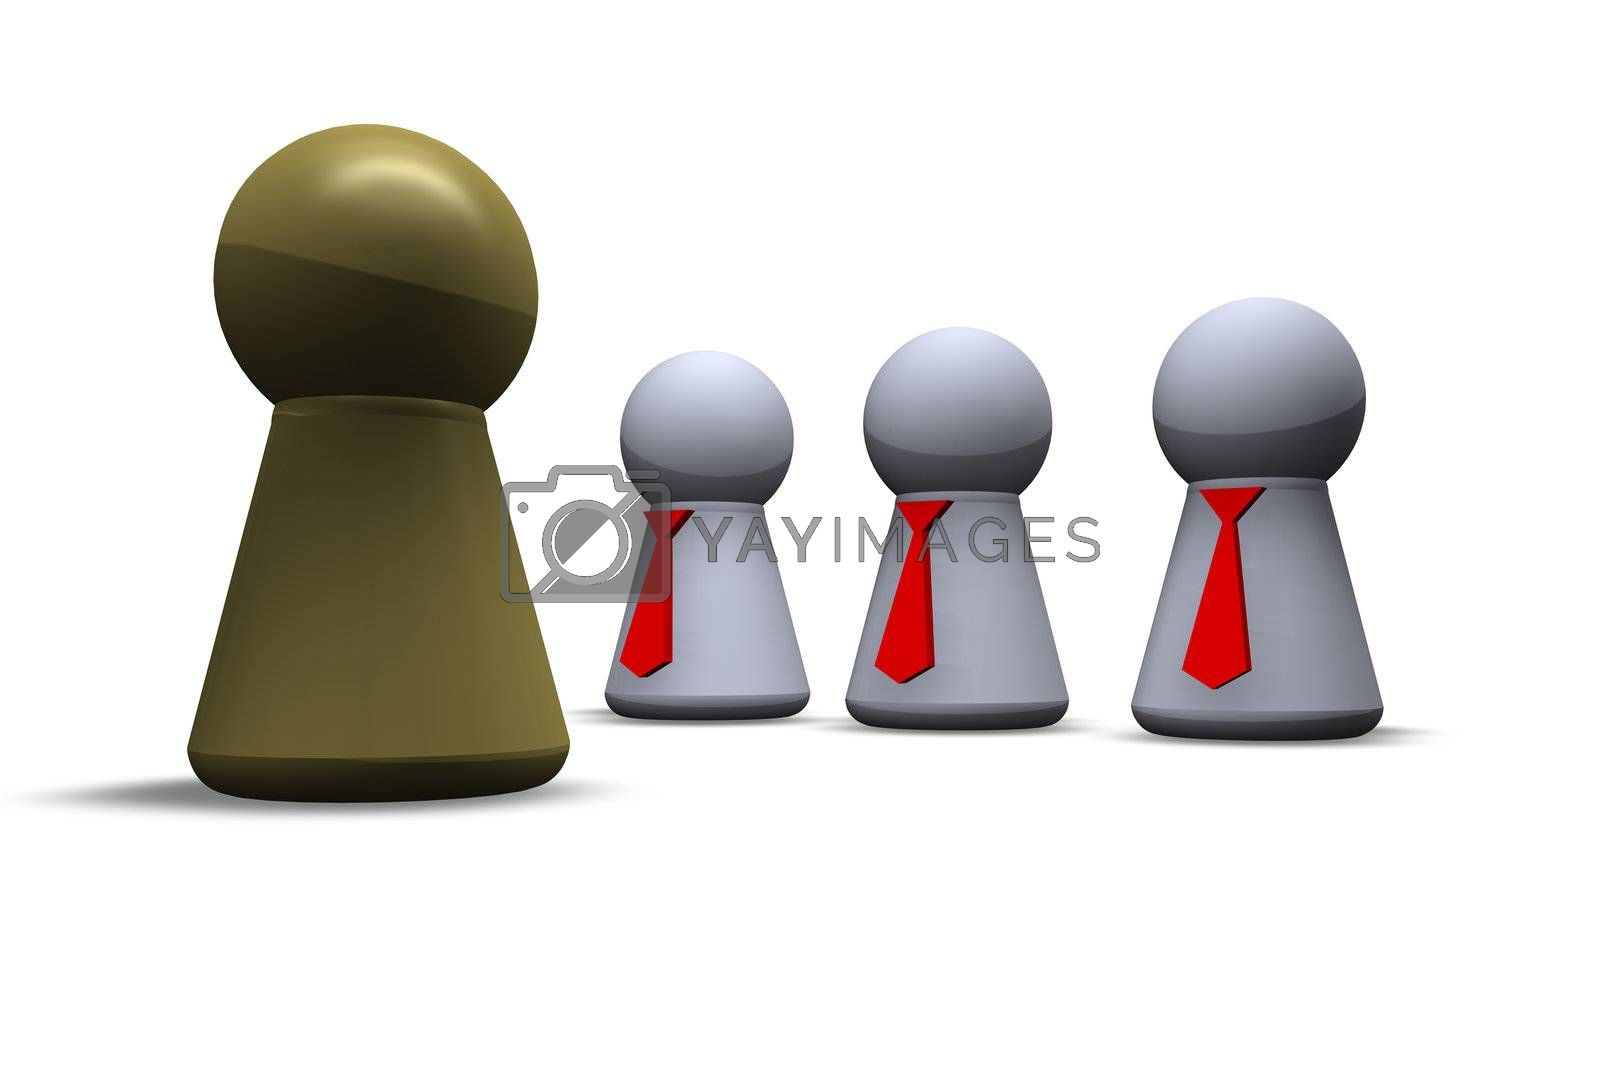 play figures with red tie and one in gold